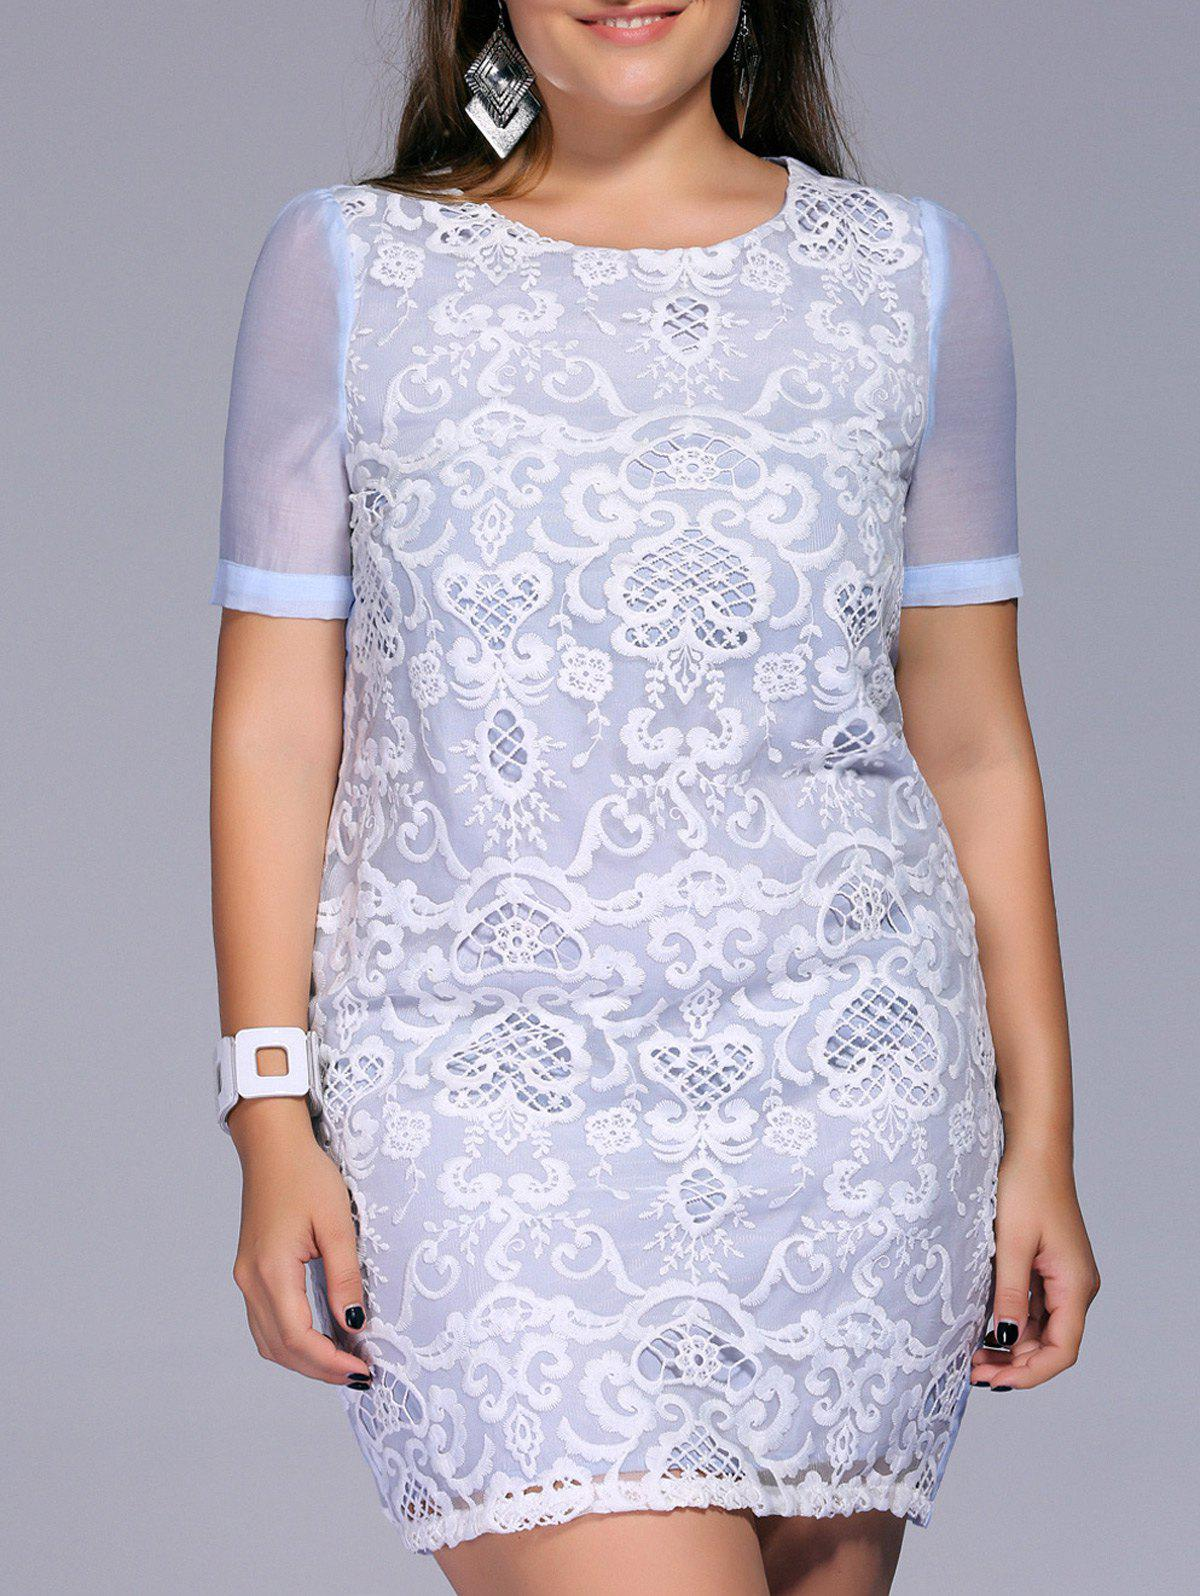 Sweet Plus Size Lace Patchwork Embroidered Women's Dress - LIGHT BLUE XL